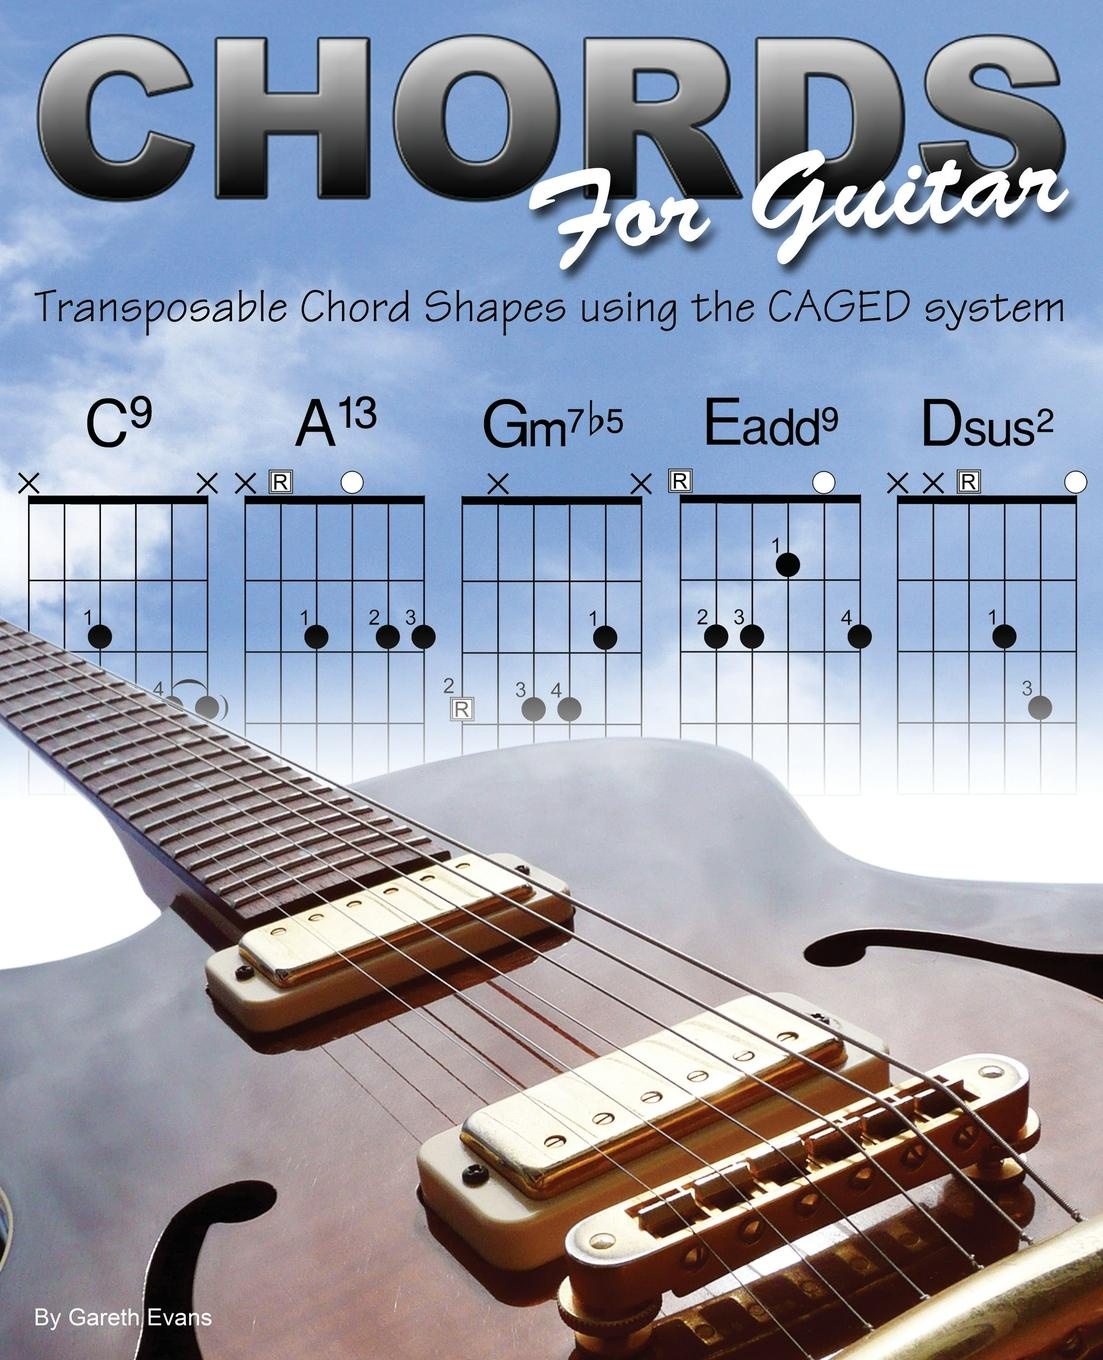 Gareth Evans Chords for Guitar. Transposable Chord Shapes using the CAGED System dan lupo guitar chords diminished 7 chords